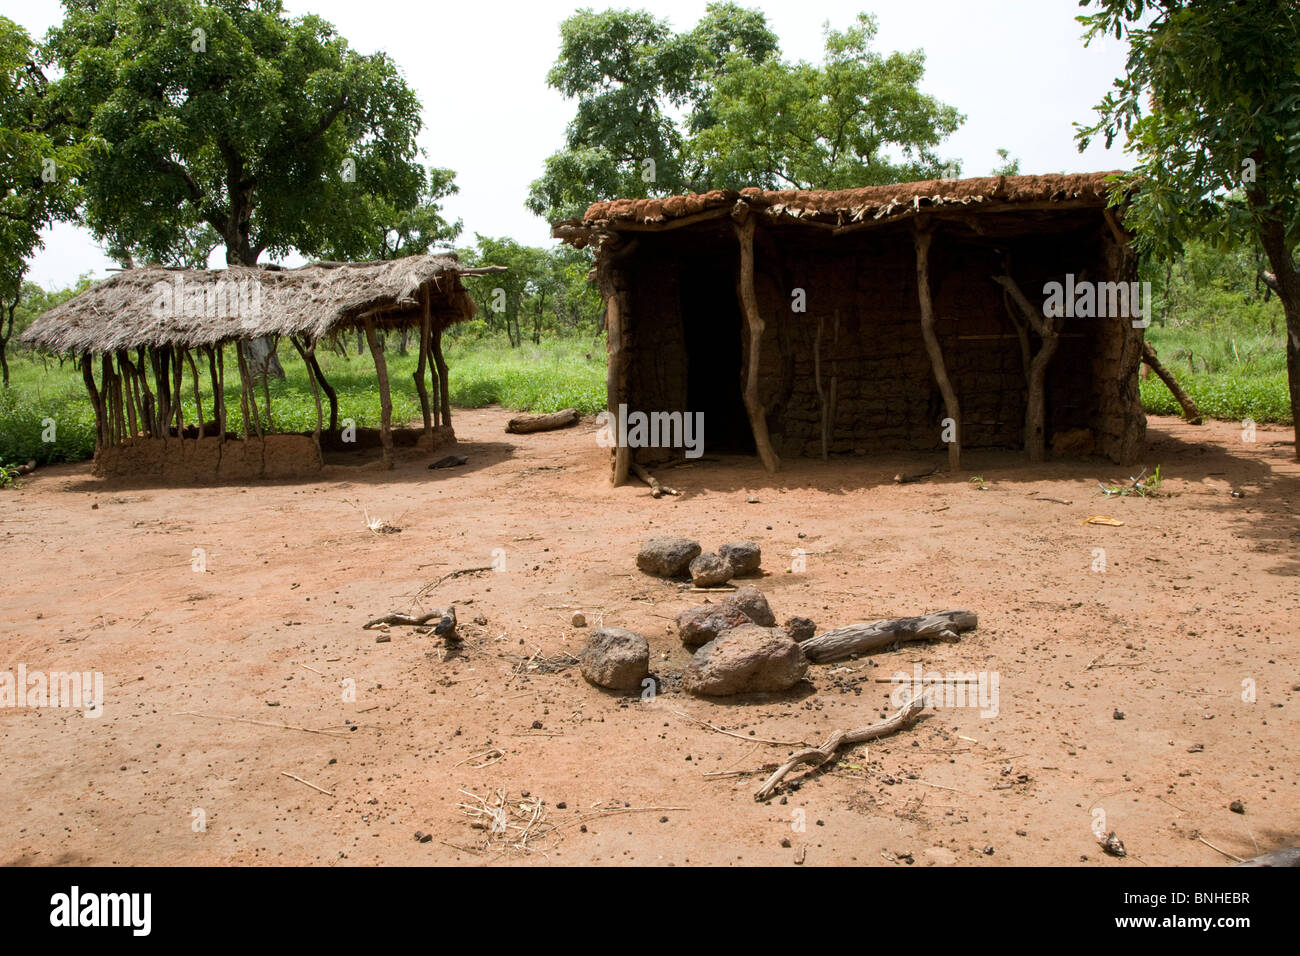 Abandoned homestead in the Gonja triangle, Damango district, Ghana. Stock Photo